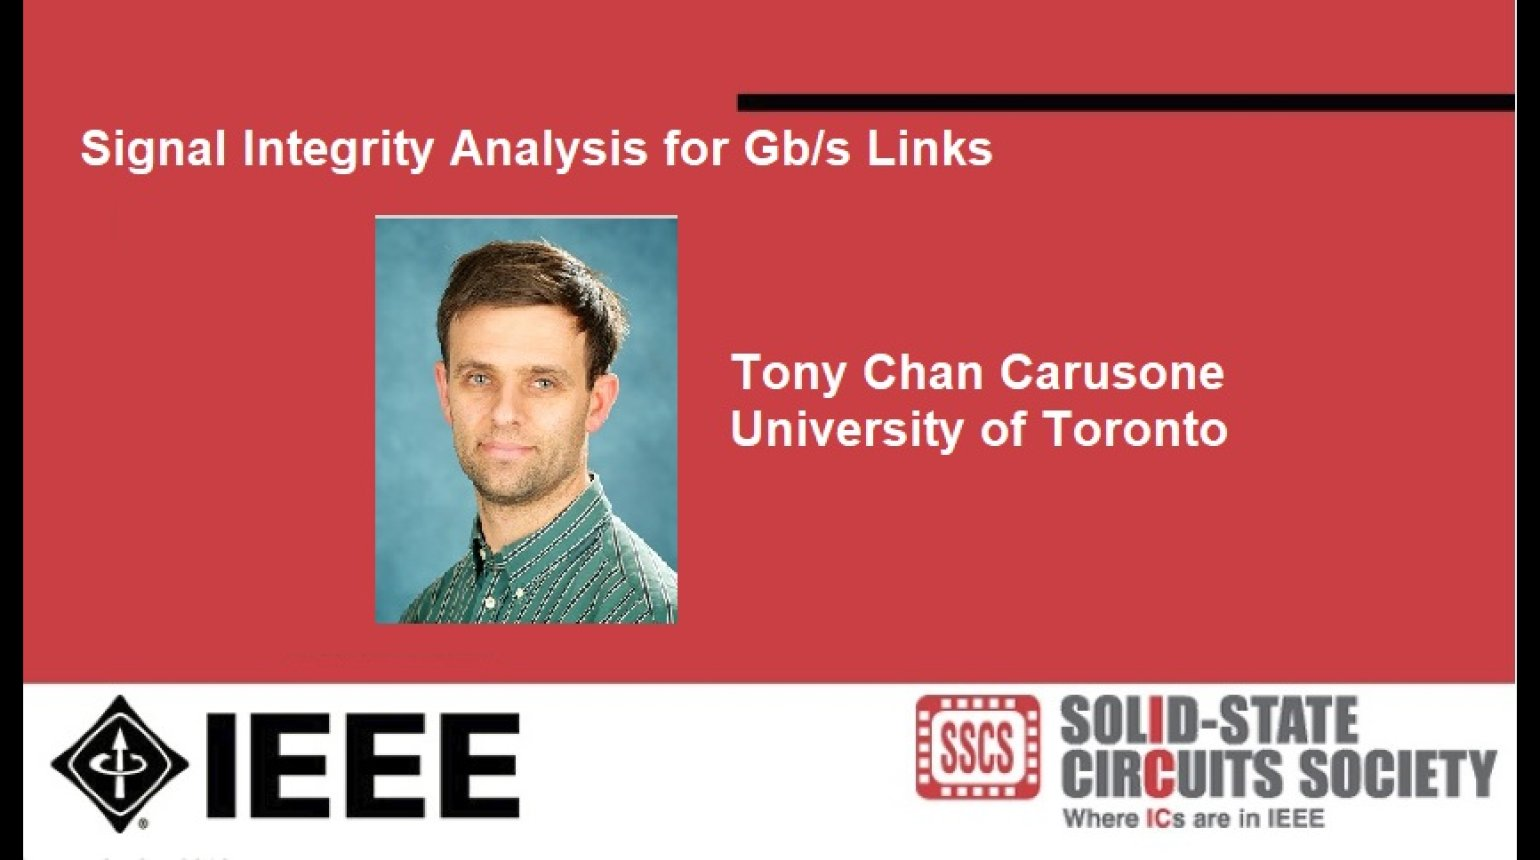 Signal Integrity Analysis for Gbs Links Video